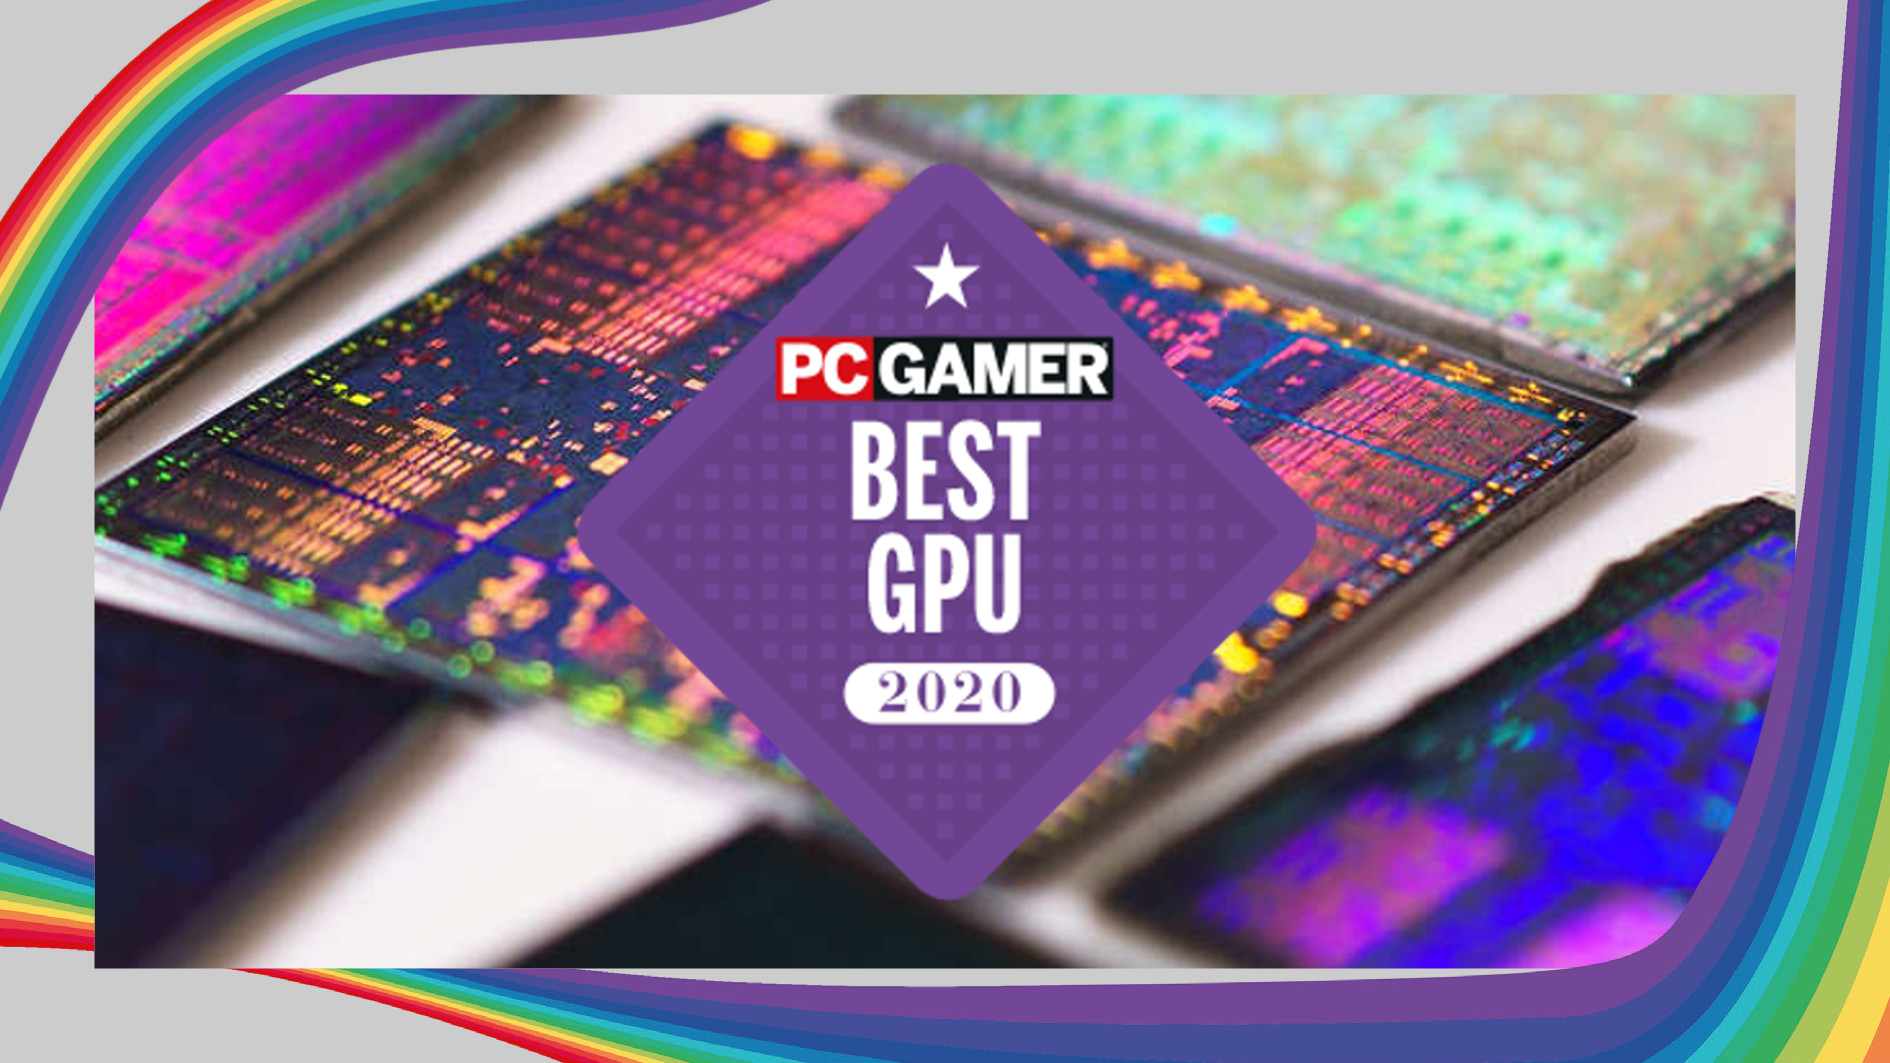 PC Gamer Hardware Awards: What is the best graphics card of 2020?